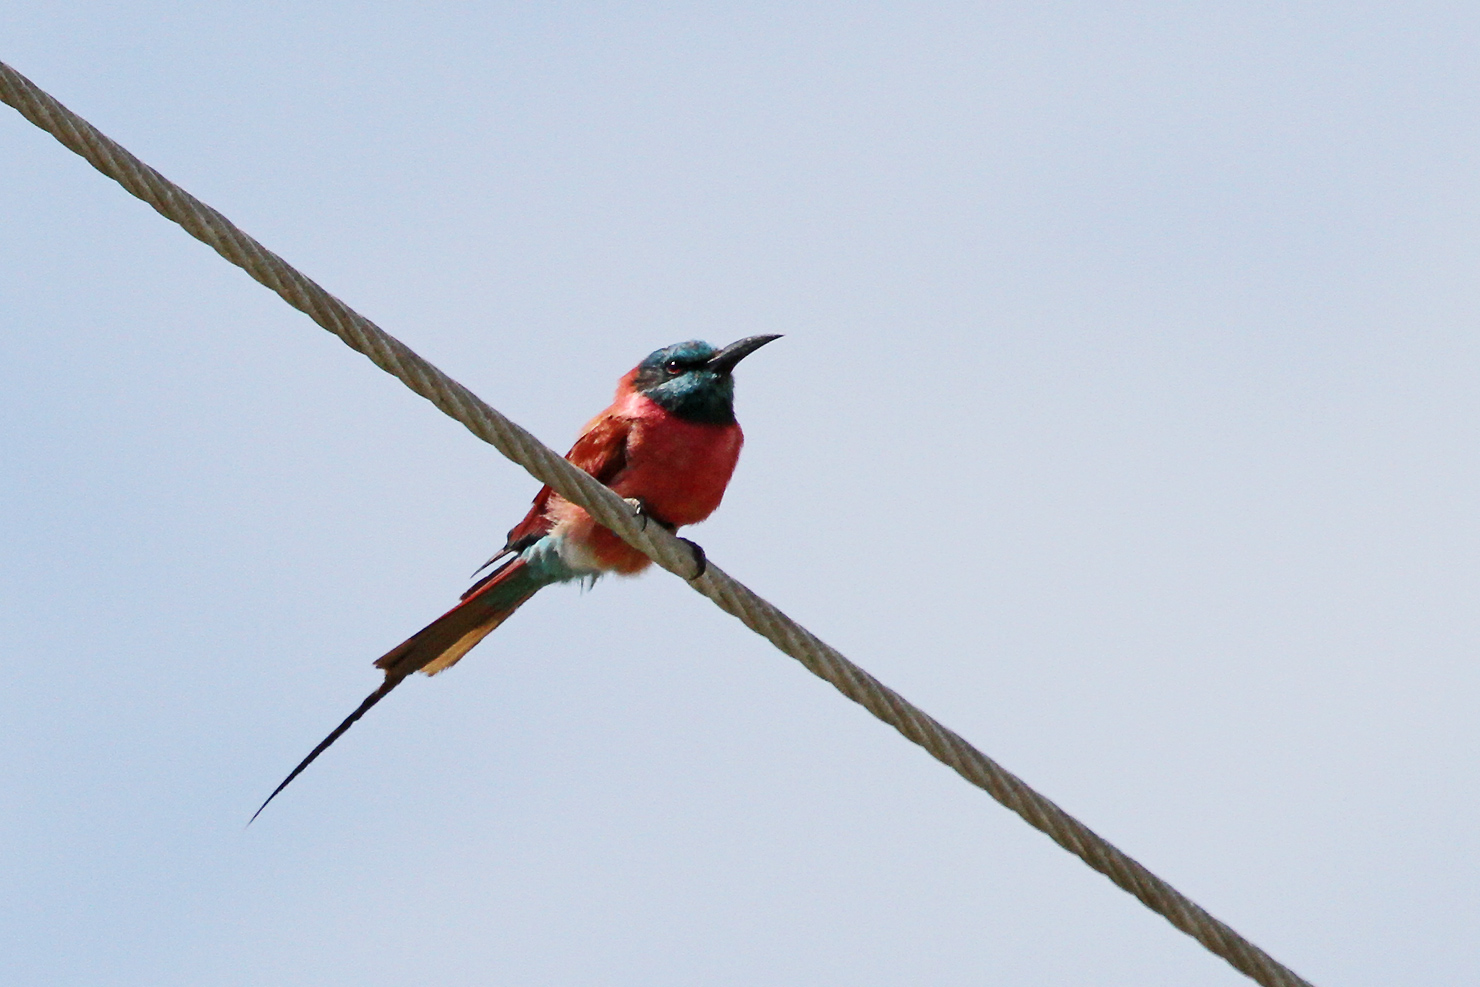 Northern Carmine Bee-eater / Watamu, Kenya / 21 September 2011